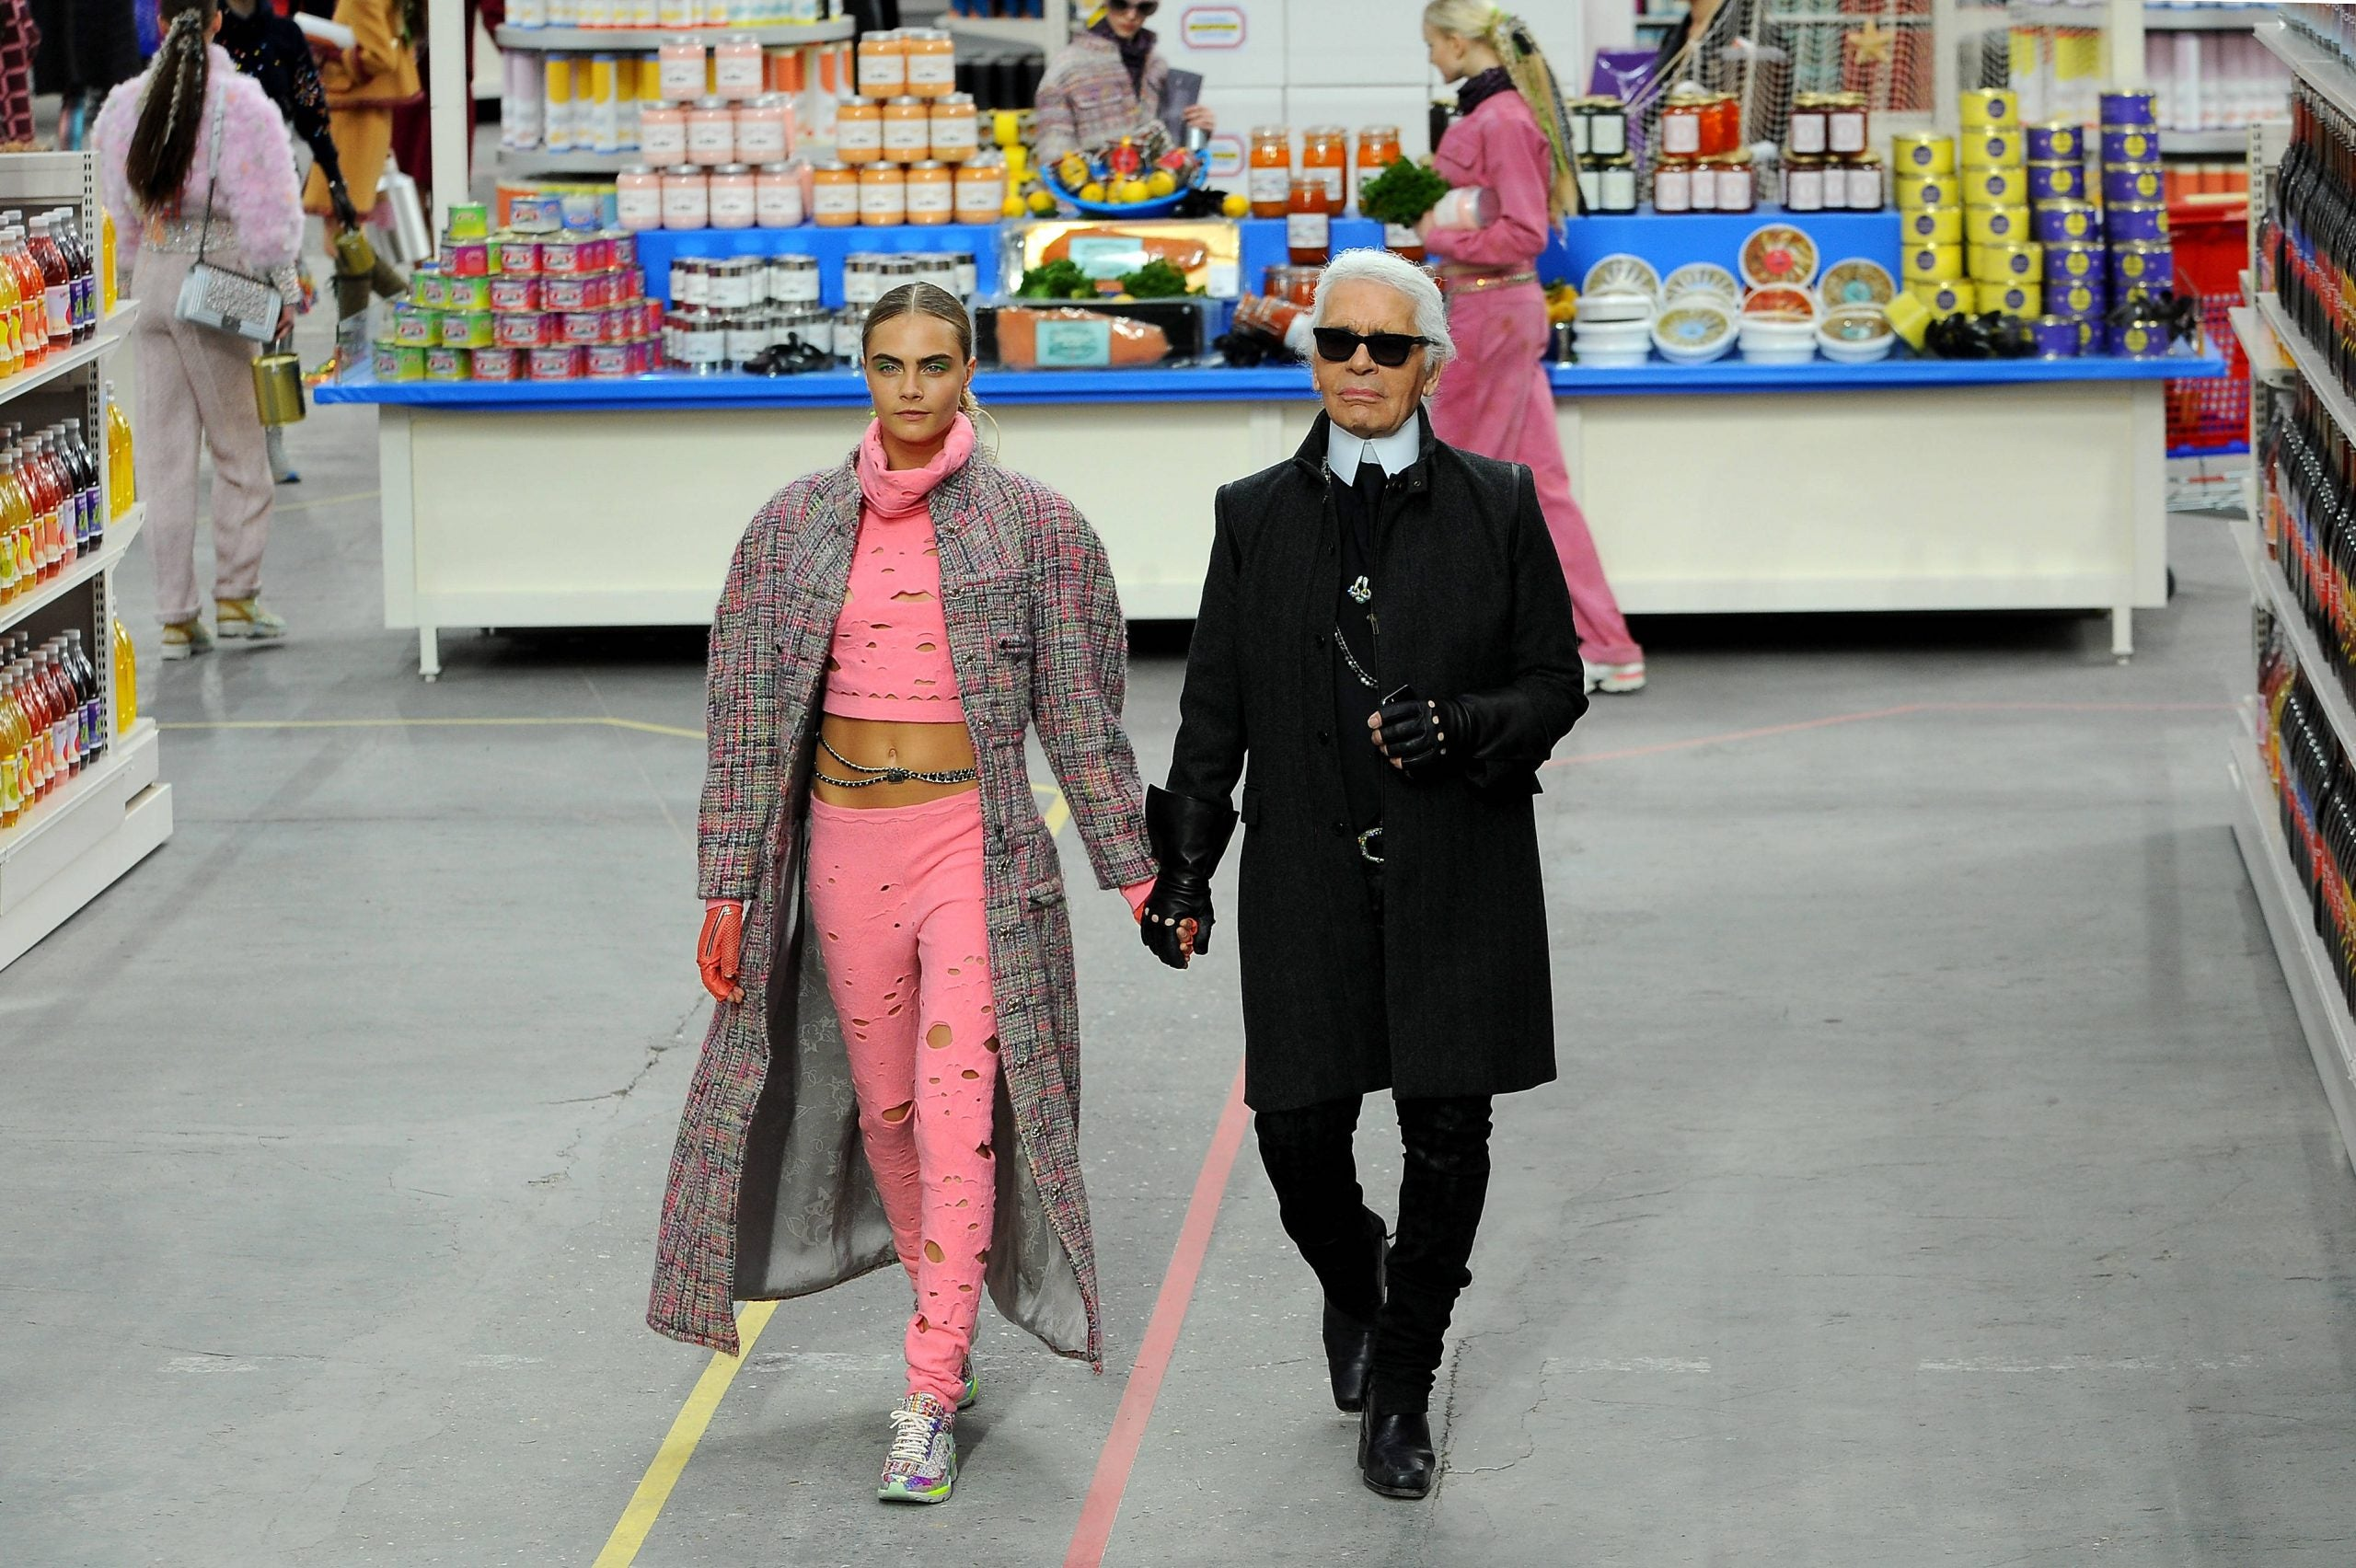 Karl Lagerfeld represented the fashion world in all its ugliness. That's why his legacy matters